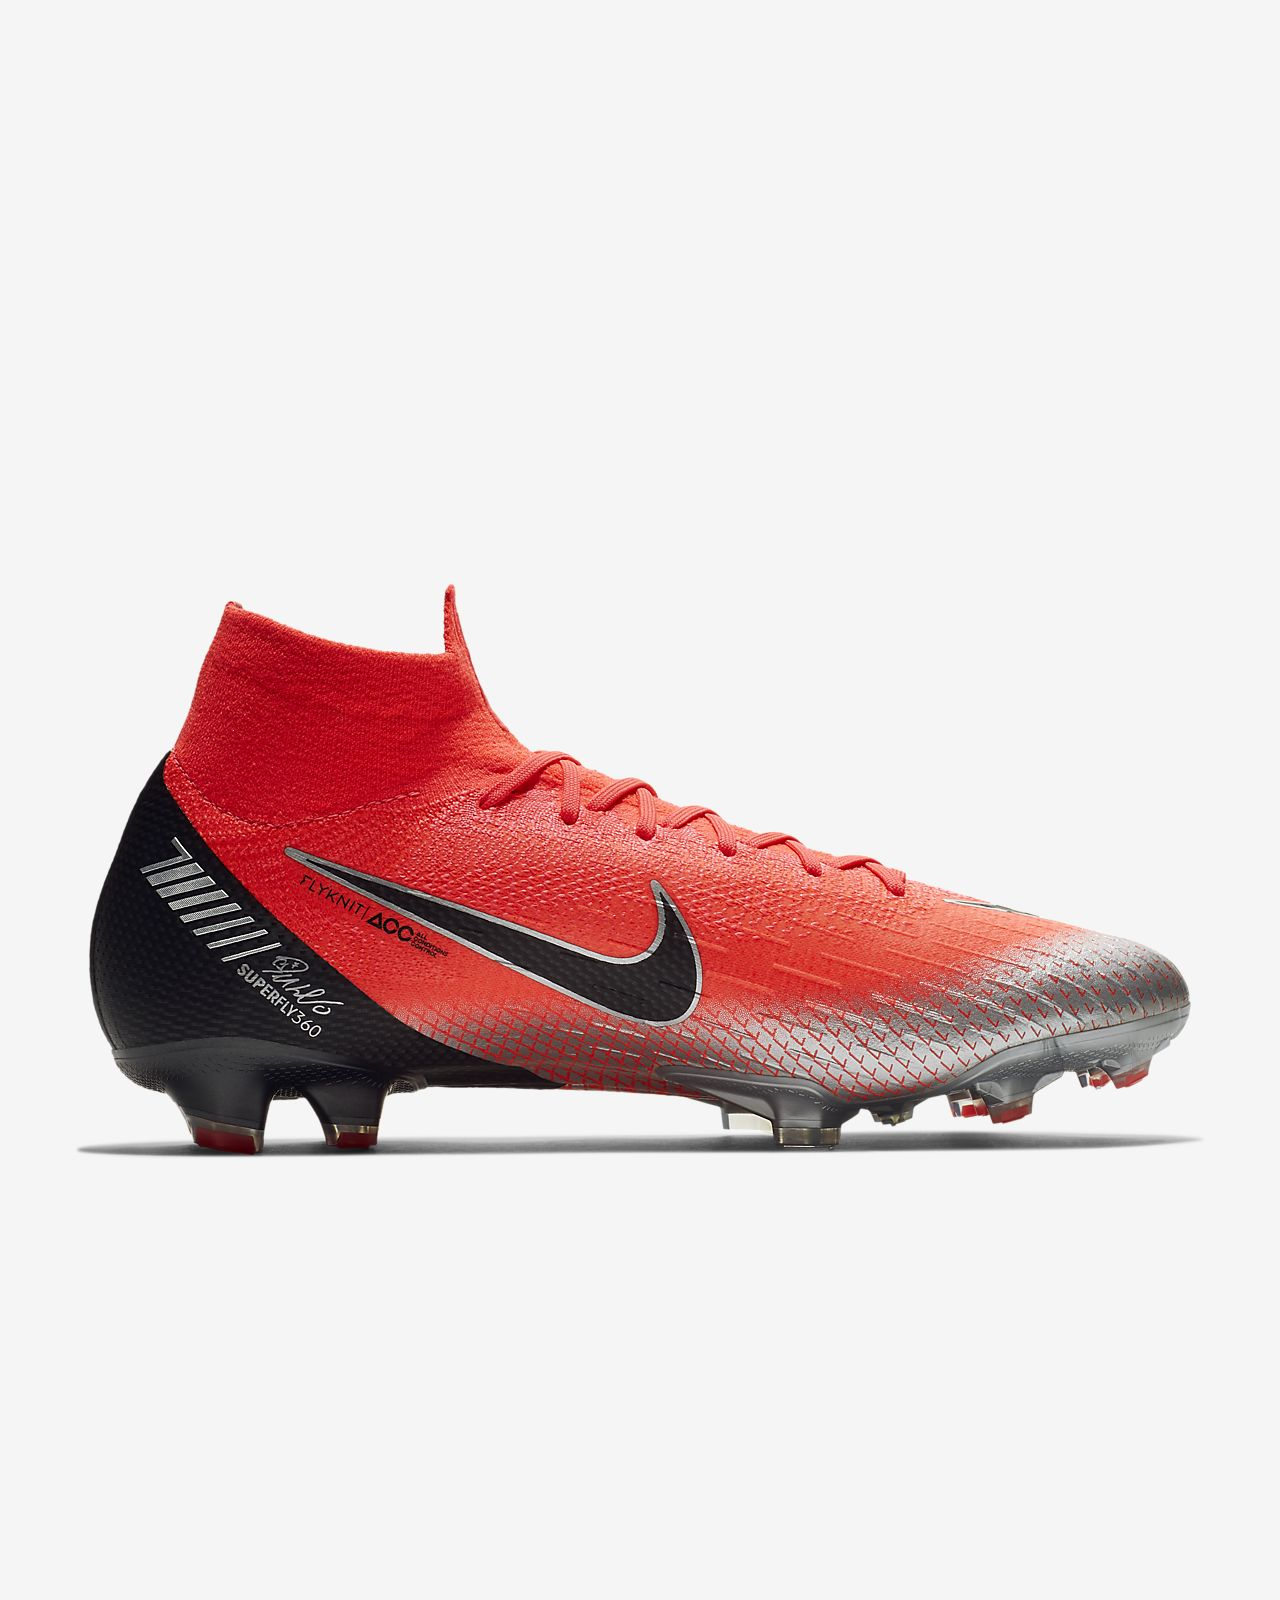 cheap for discount 3ffdc 70dca promo code nike mercurial superfly iv bhm tf schwarz weiß ...